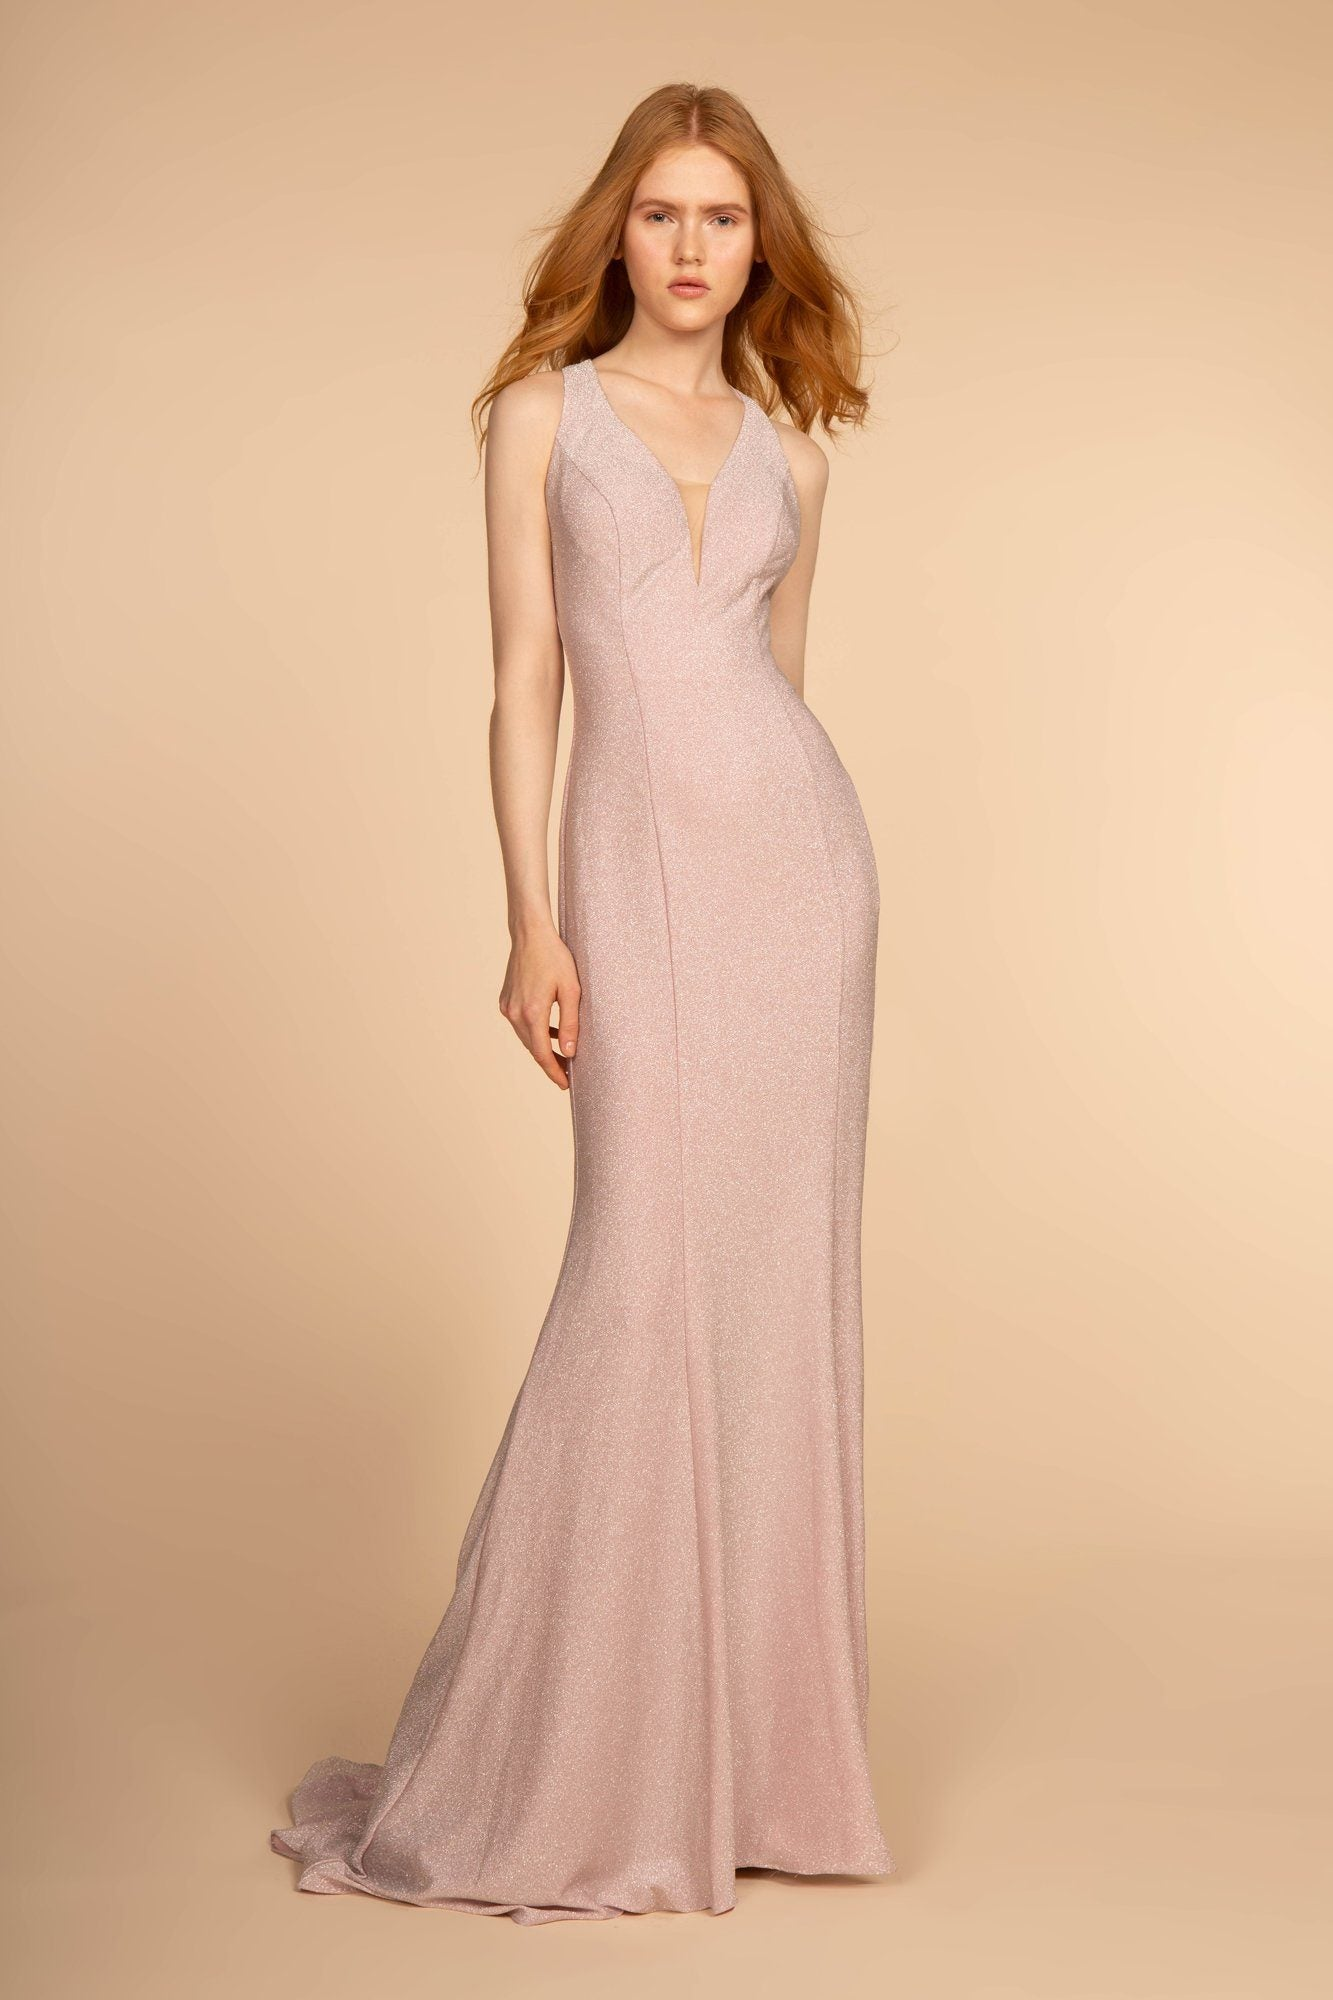 Sexy tight formal dress GL2549-Simply Fab Dress